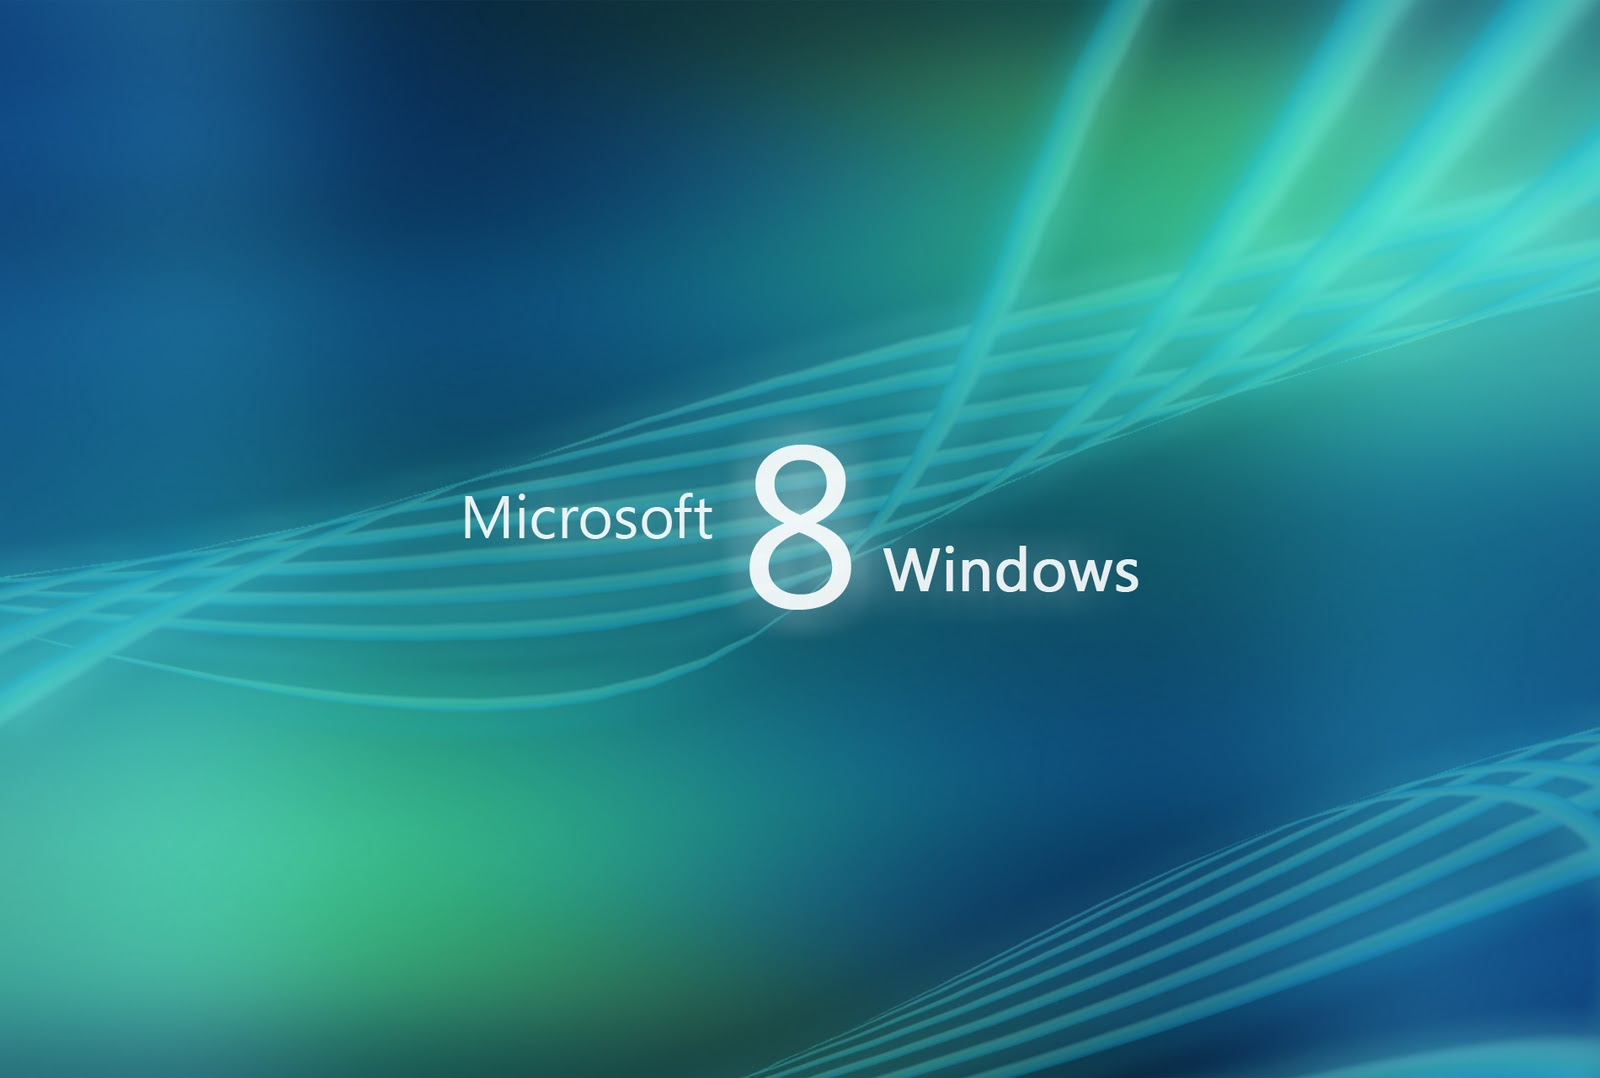 Free Live Wallpapers For Windows 8: 3D Live Wallpaper Windows 8